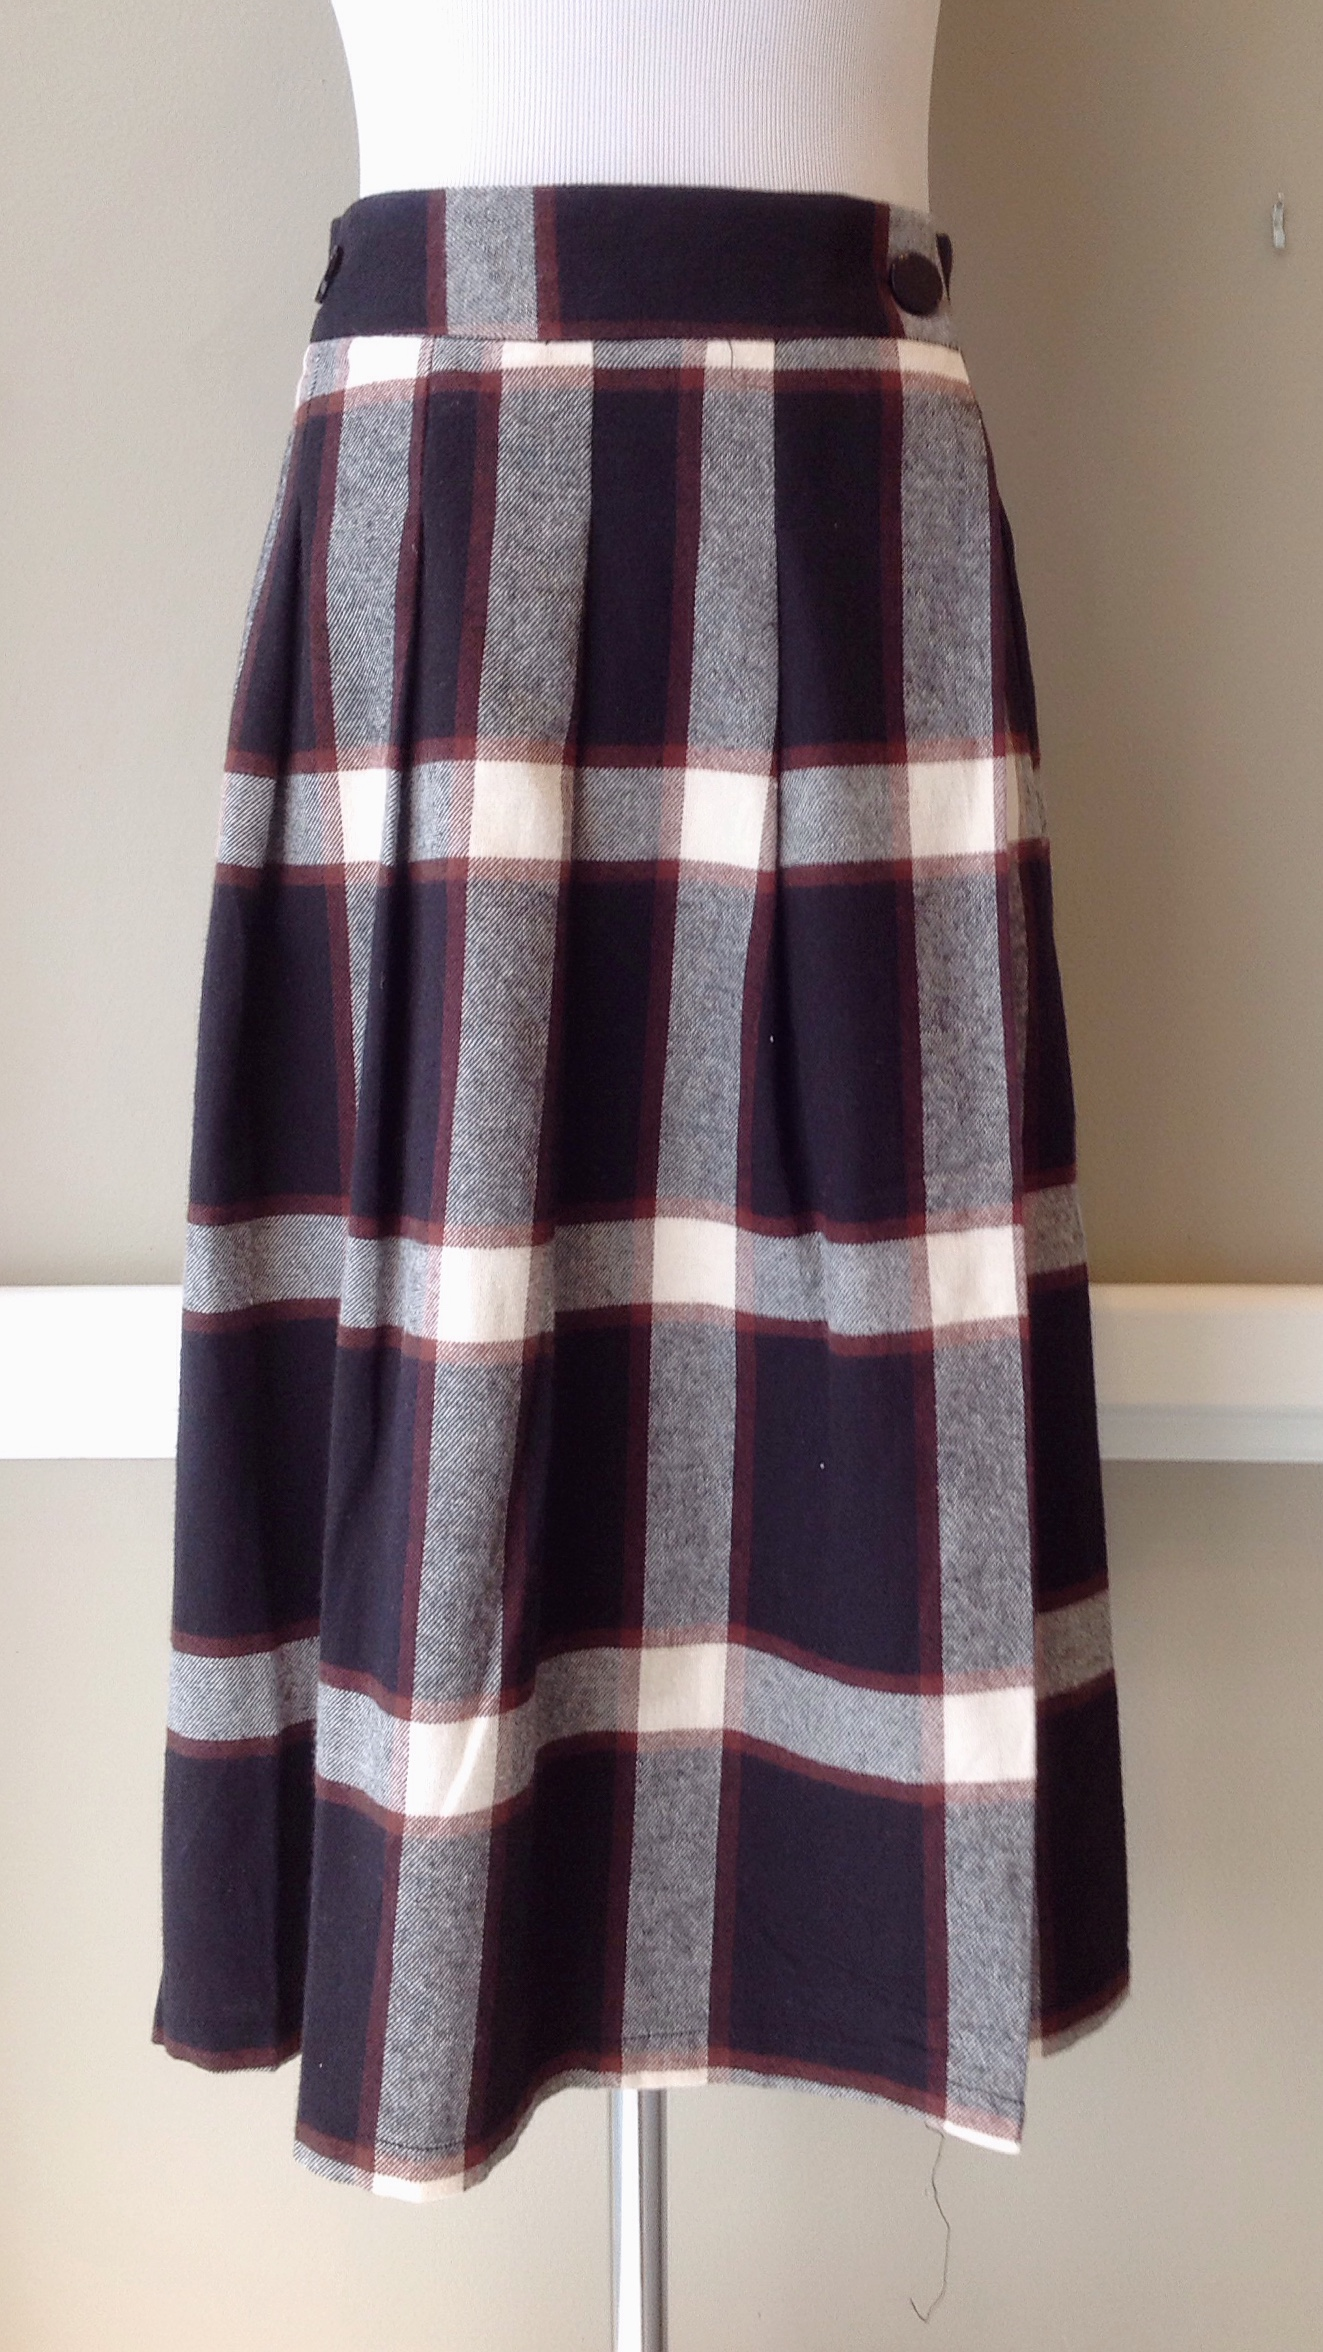 Tartan plaid wrap skirt with front pleating, $35